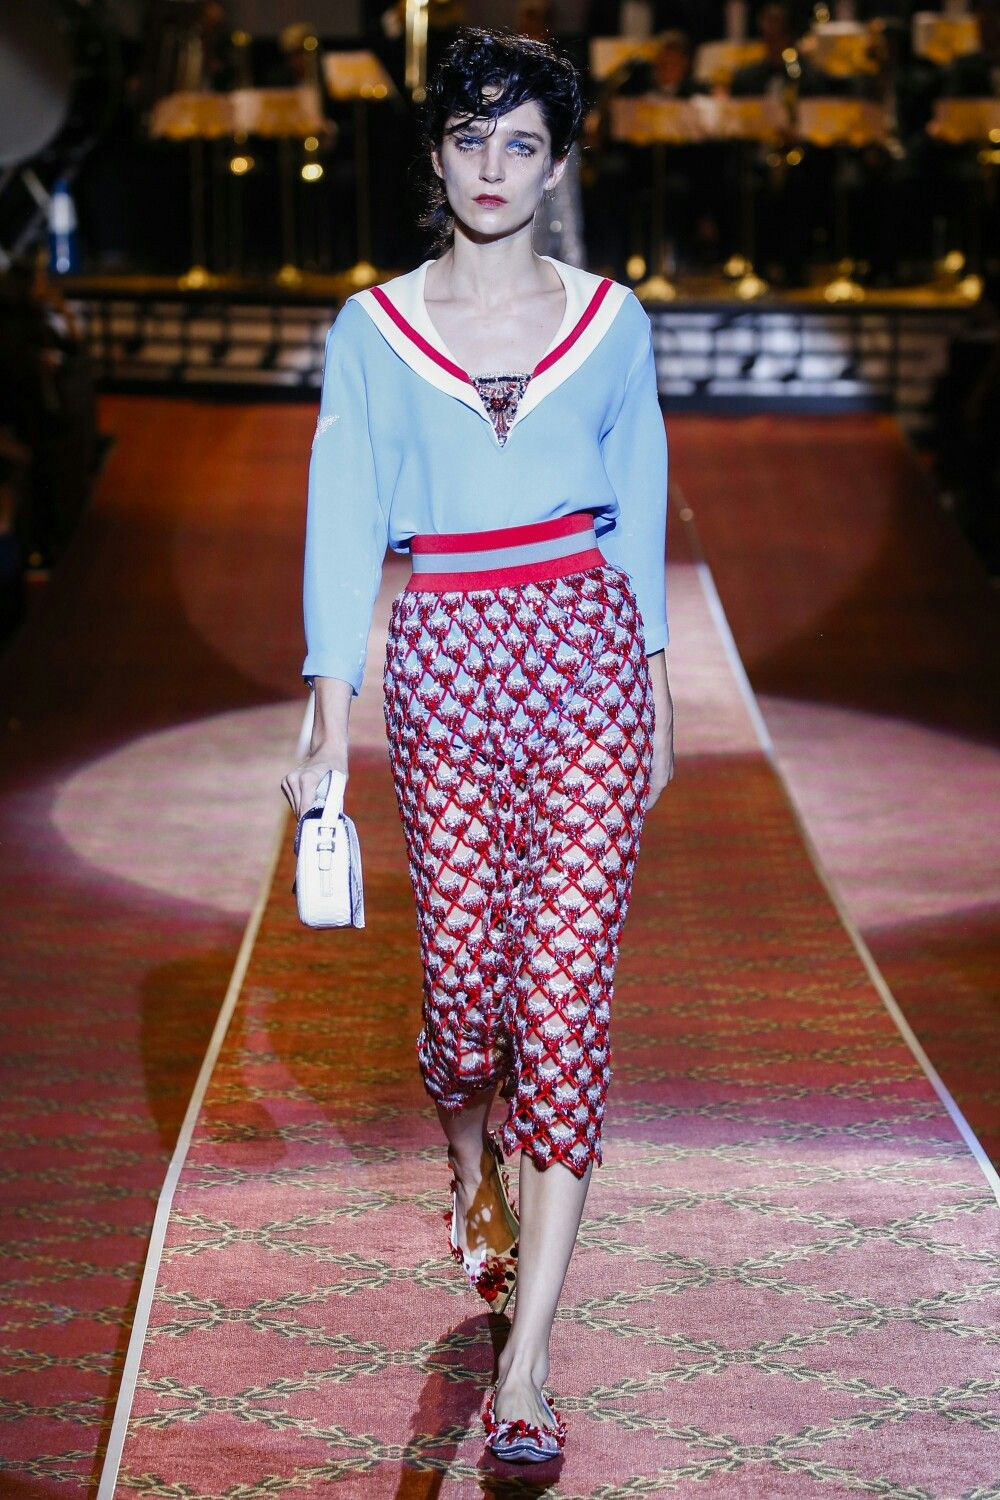 Marc Jacobs Spring 2016 Ready-to-Wear Fashion Show Shop #marcbymarcjacobs now on #AMAZE: on.amz.az/1IK8LkT Marc Jacobs Spring 2016 Ready-to-Wear Fashion Show - Natalie Westling  399번 저장   좋아요 17개 출처: vogue.com